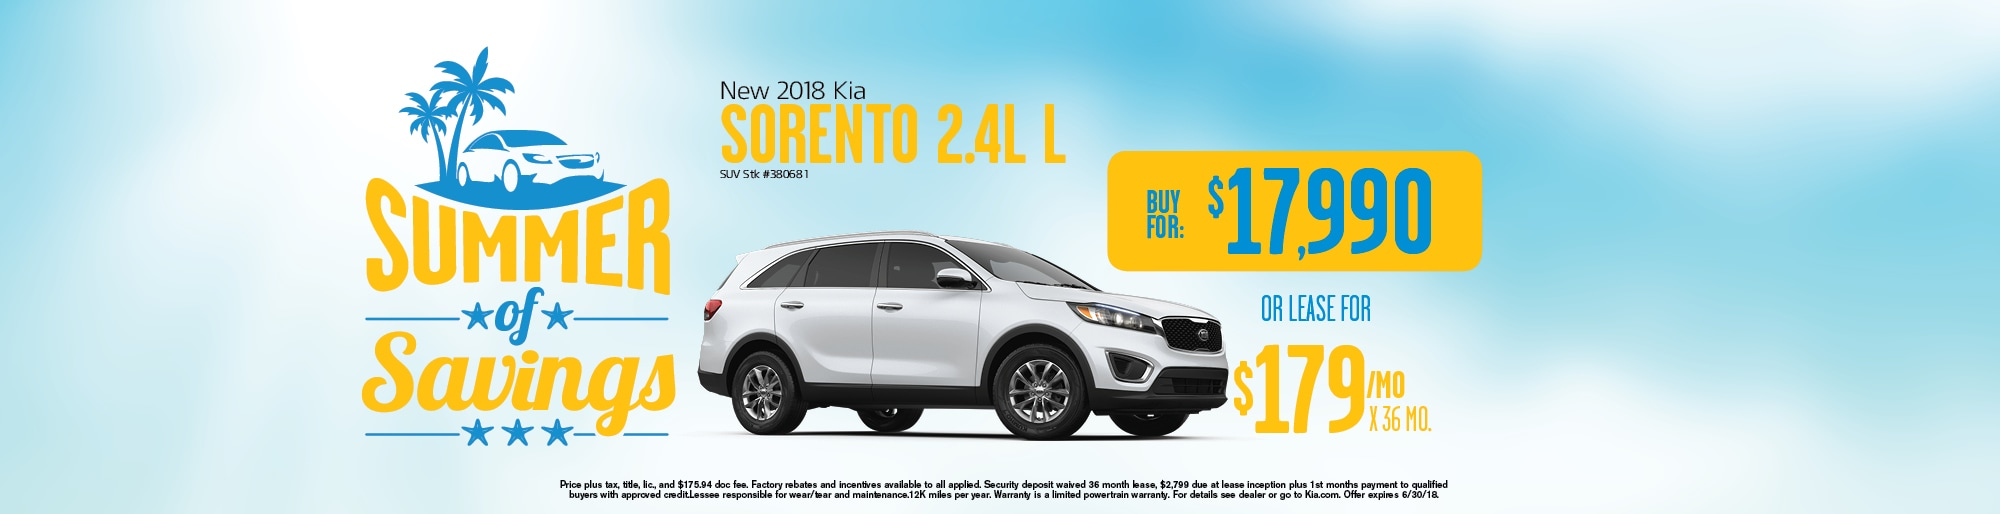 sale for kia to libertyville thumbnail a sorento click larger in cars view image